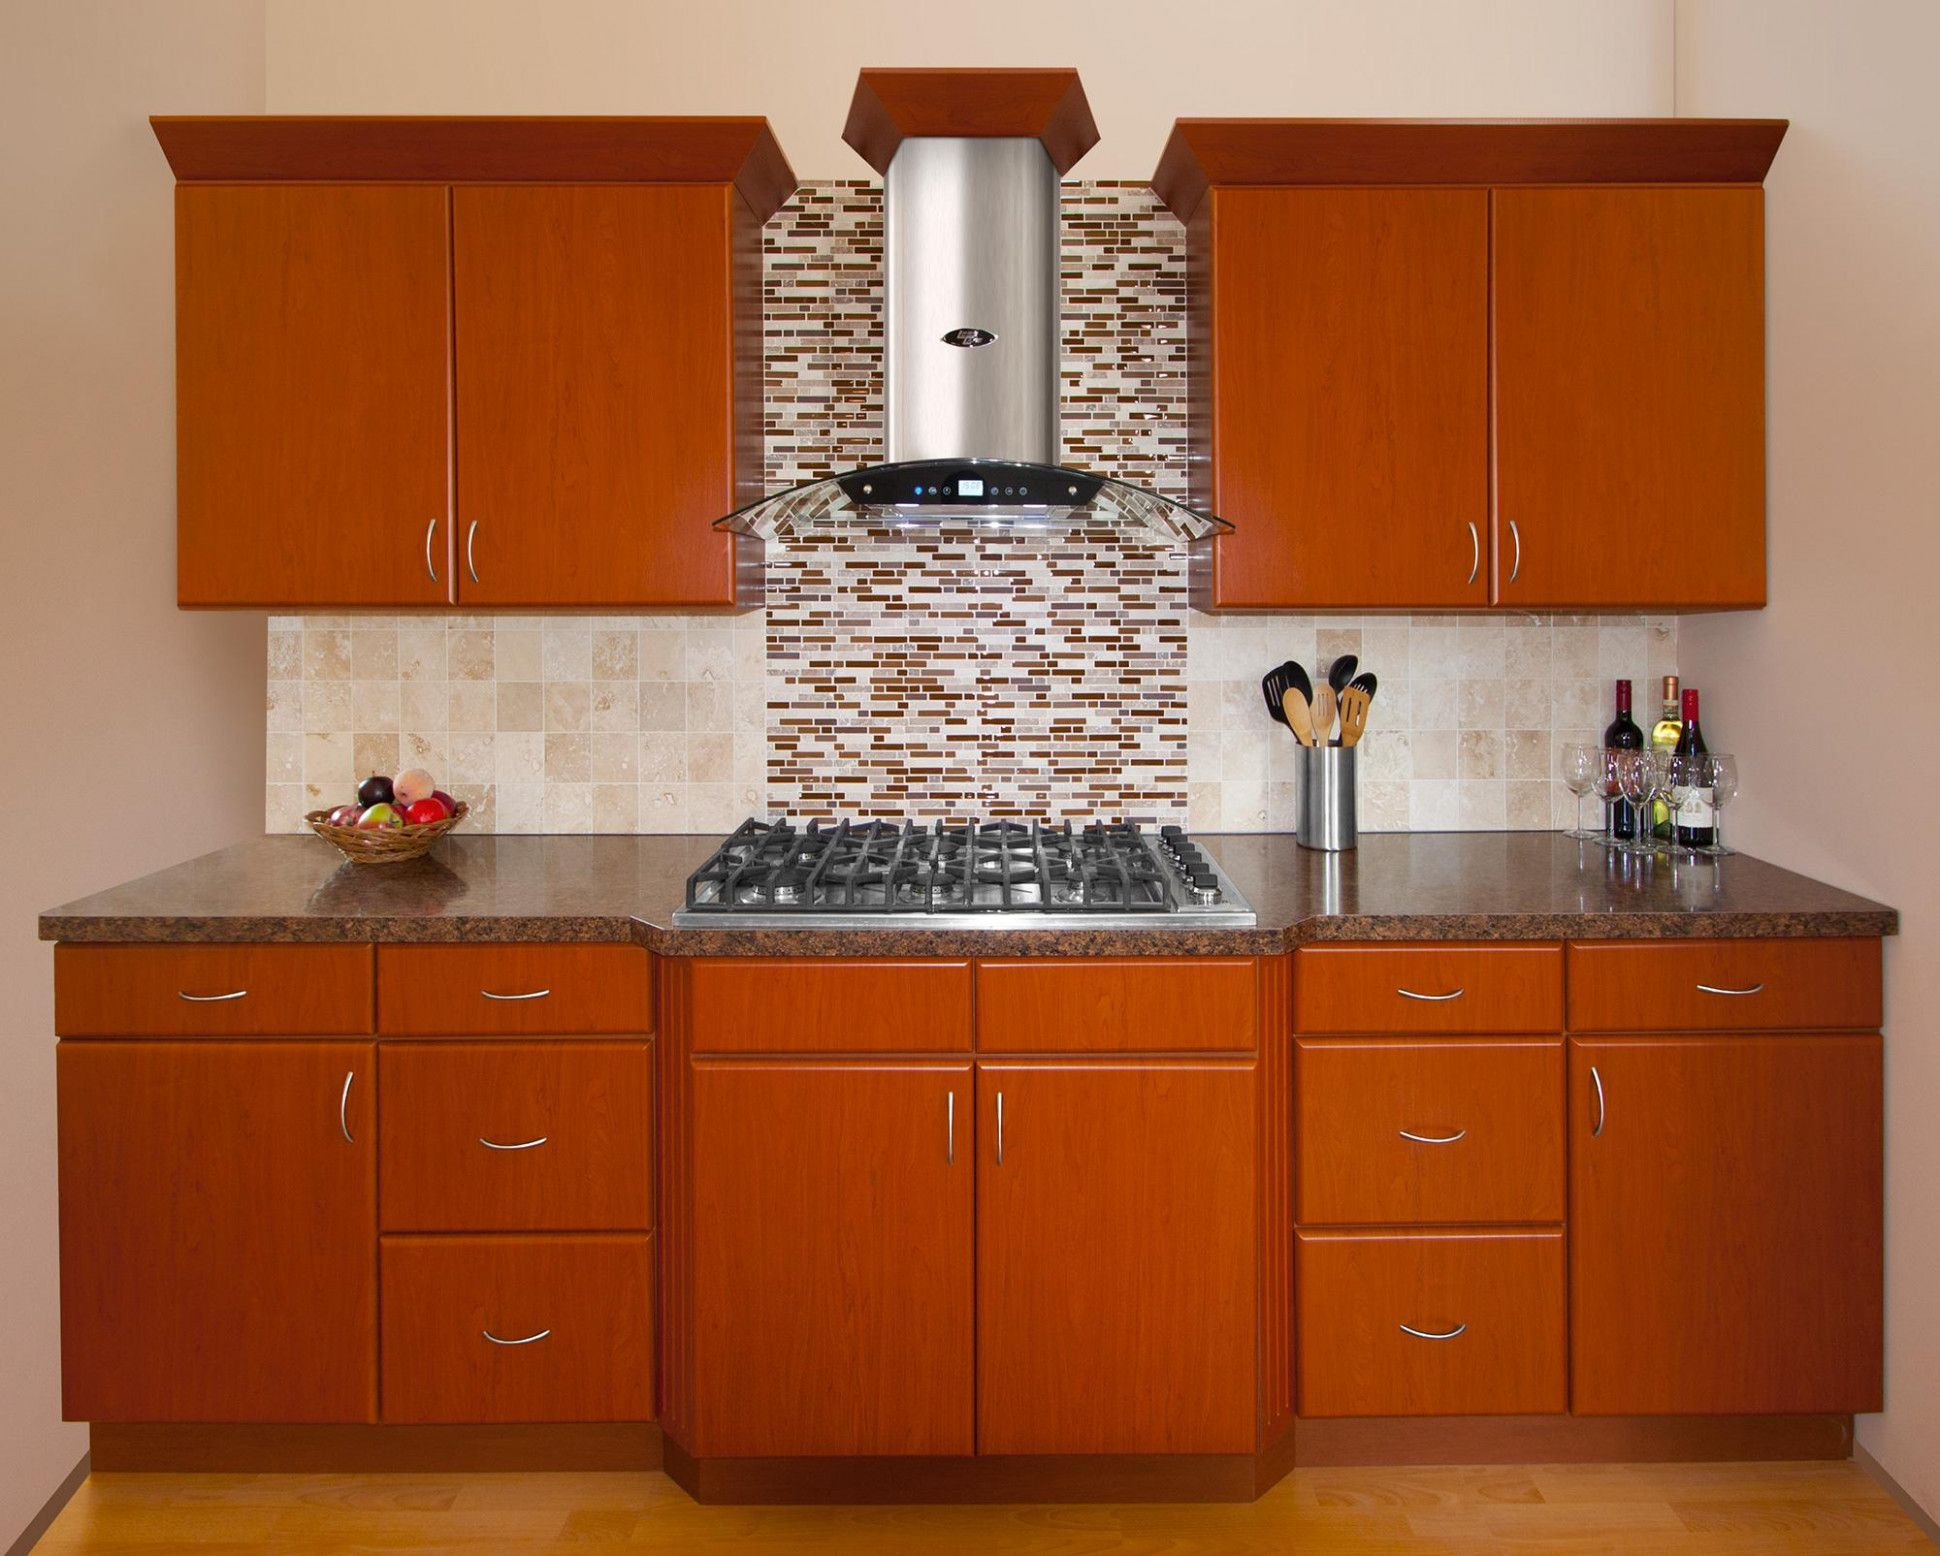 10 Kitchen Cabinets Design With Price